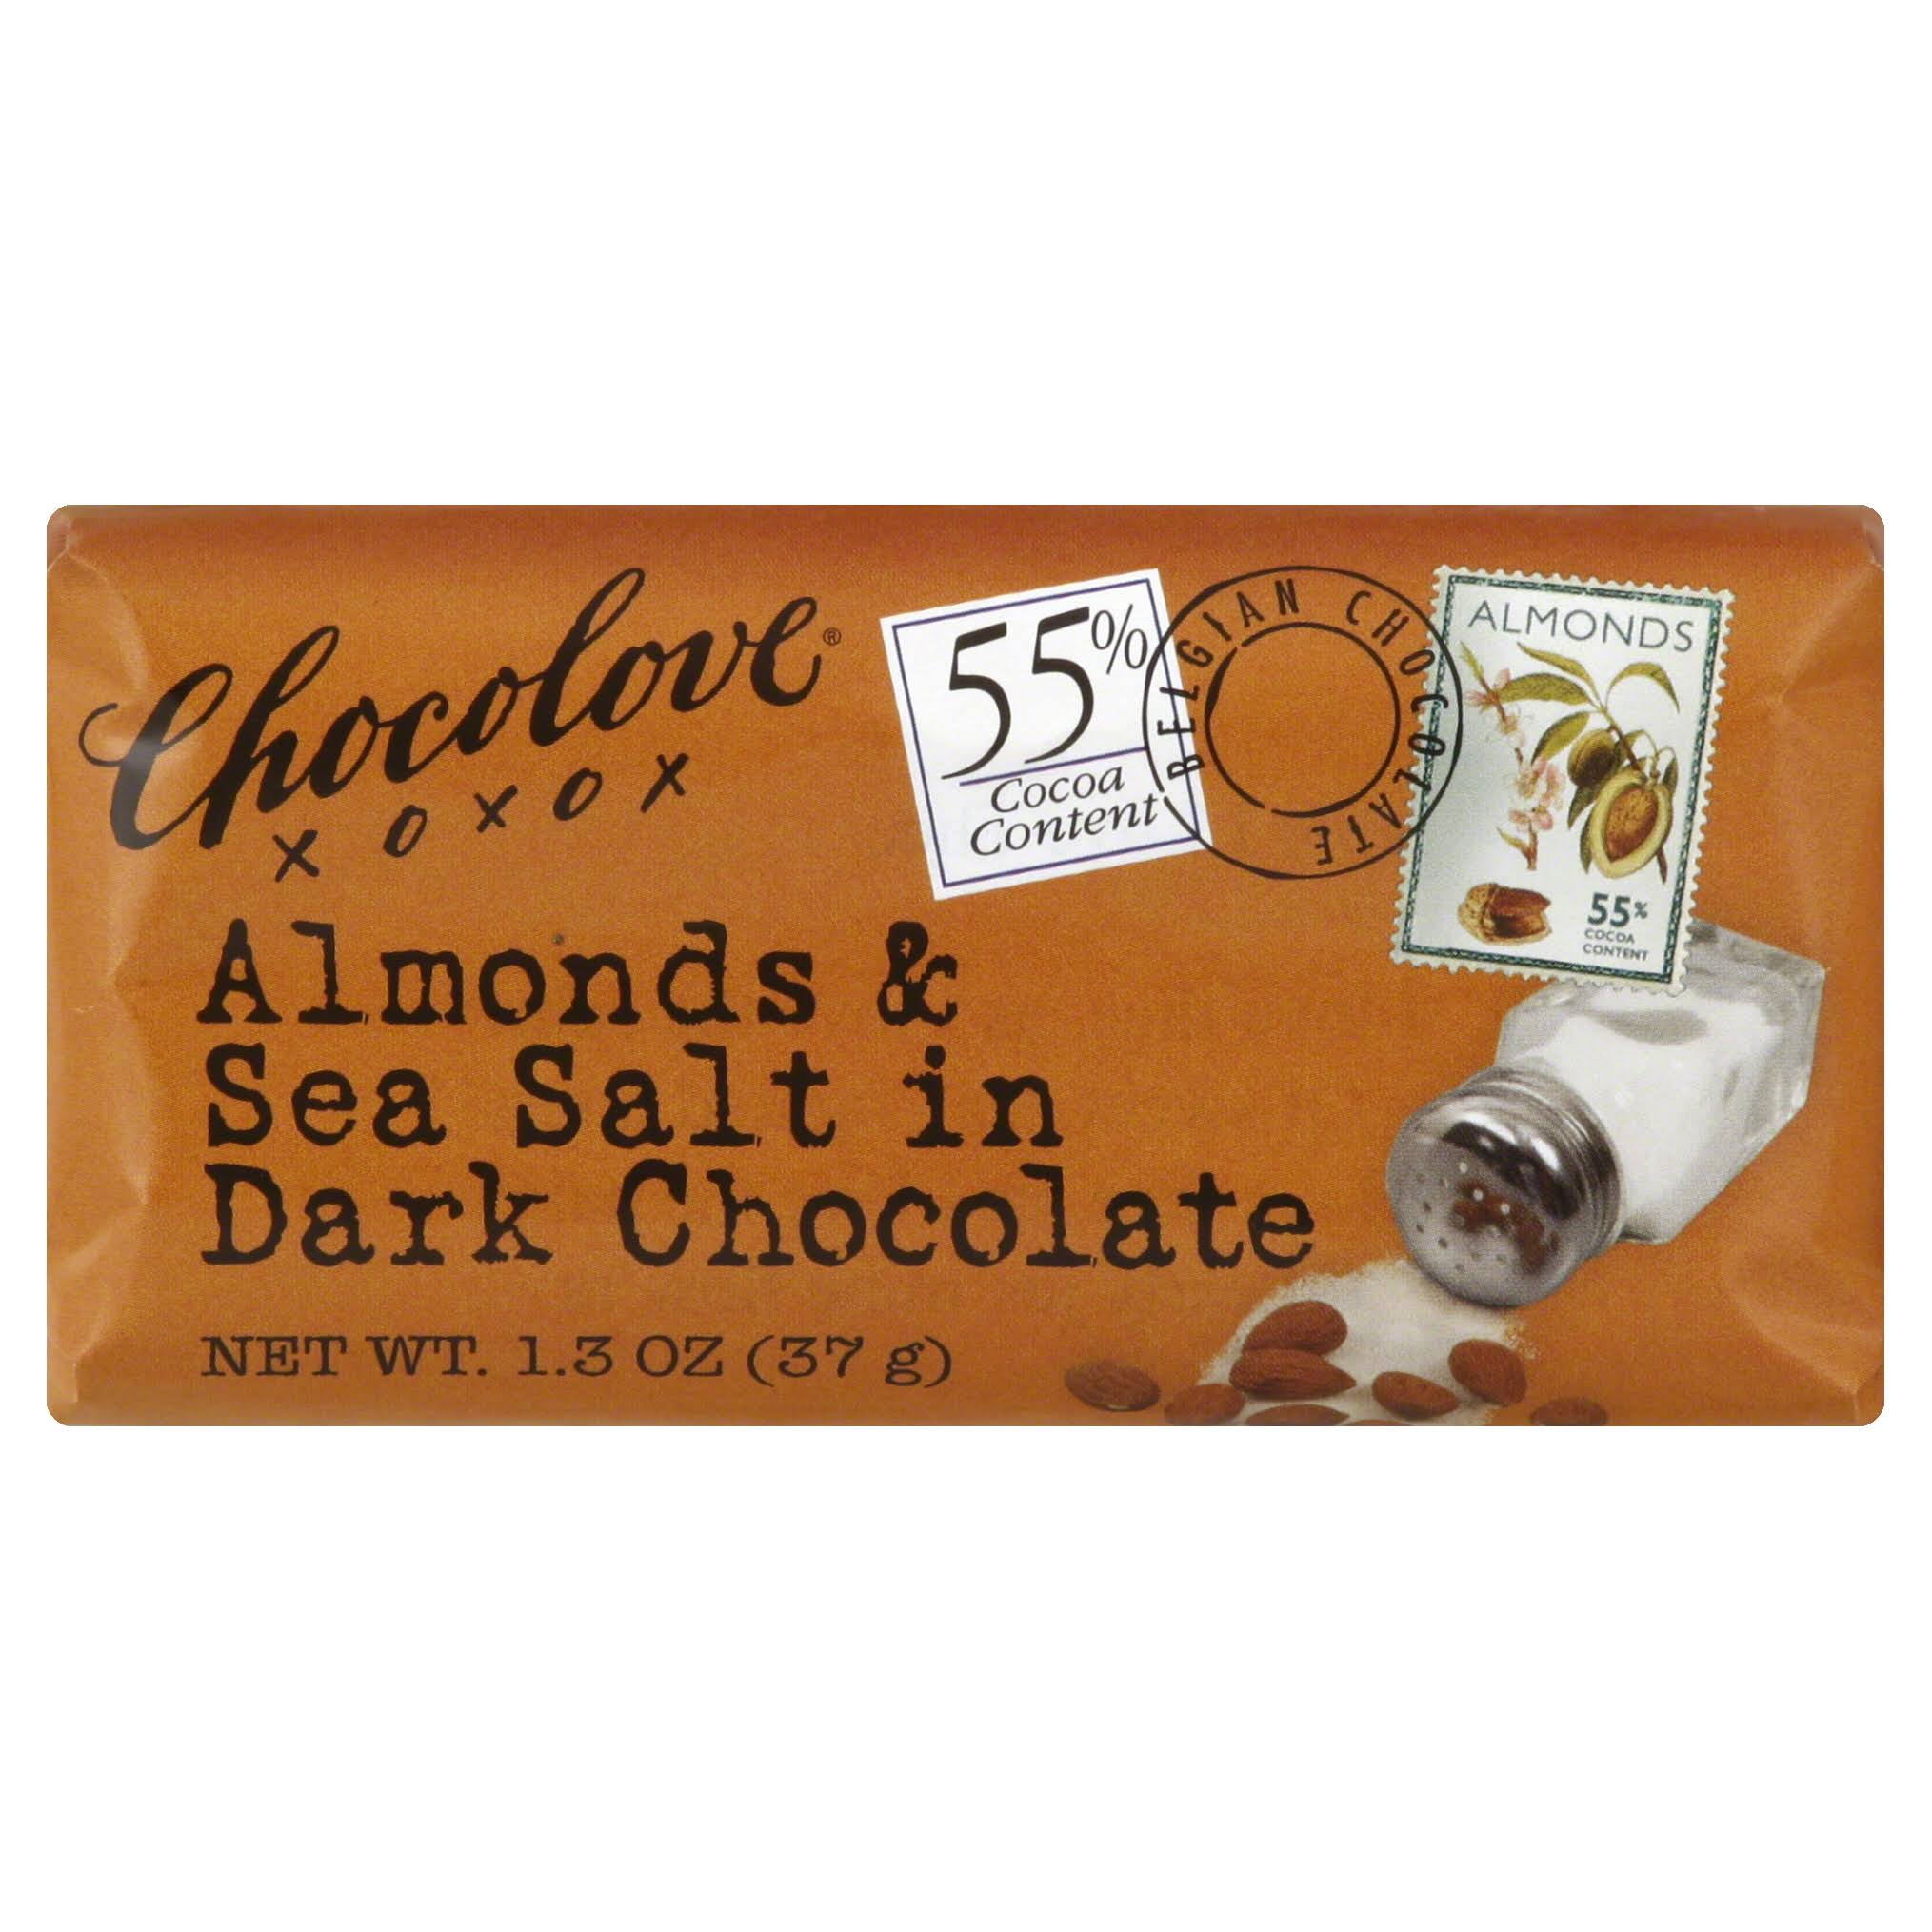 Chocolove Chocolate Bar - Almonds and Sea Salt in Dark Chocolate, 1.3oz